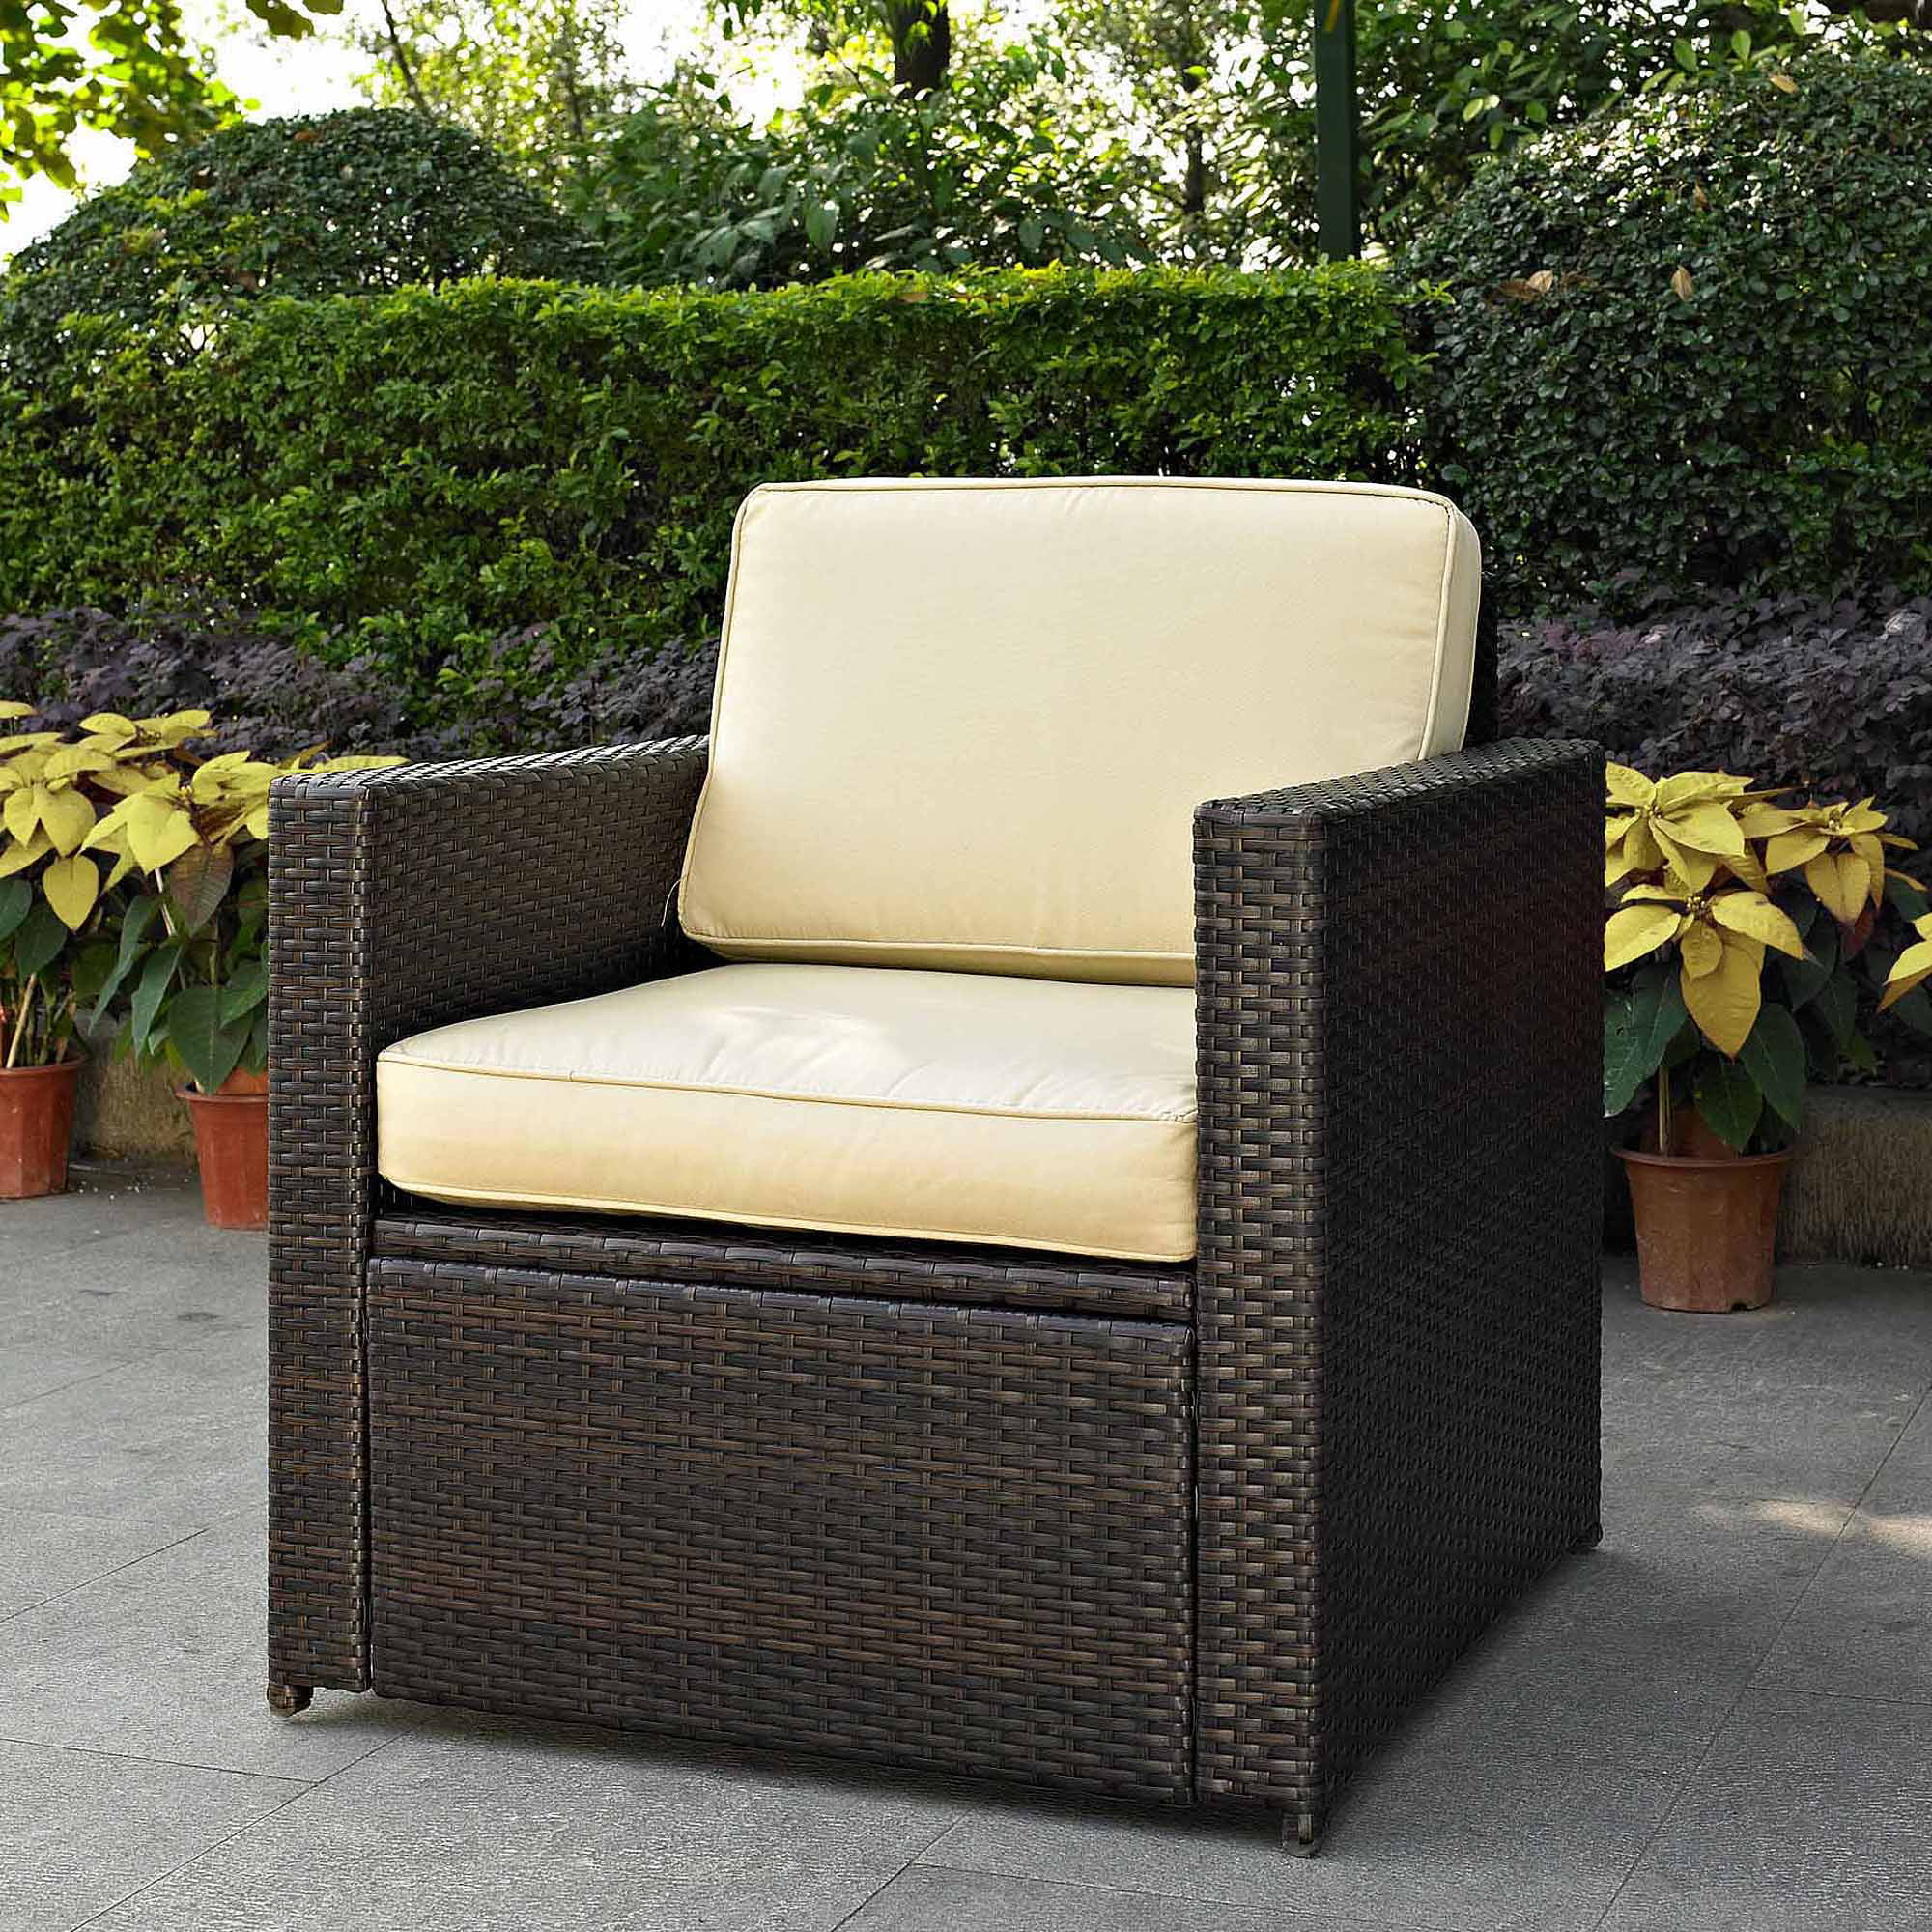 & Wicker Outdoor Reclining Lounge Chair - Walmart.com islam-shia.org